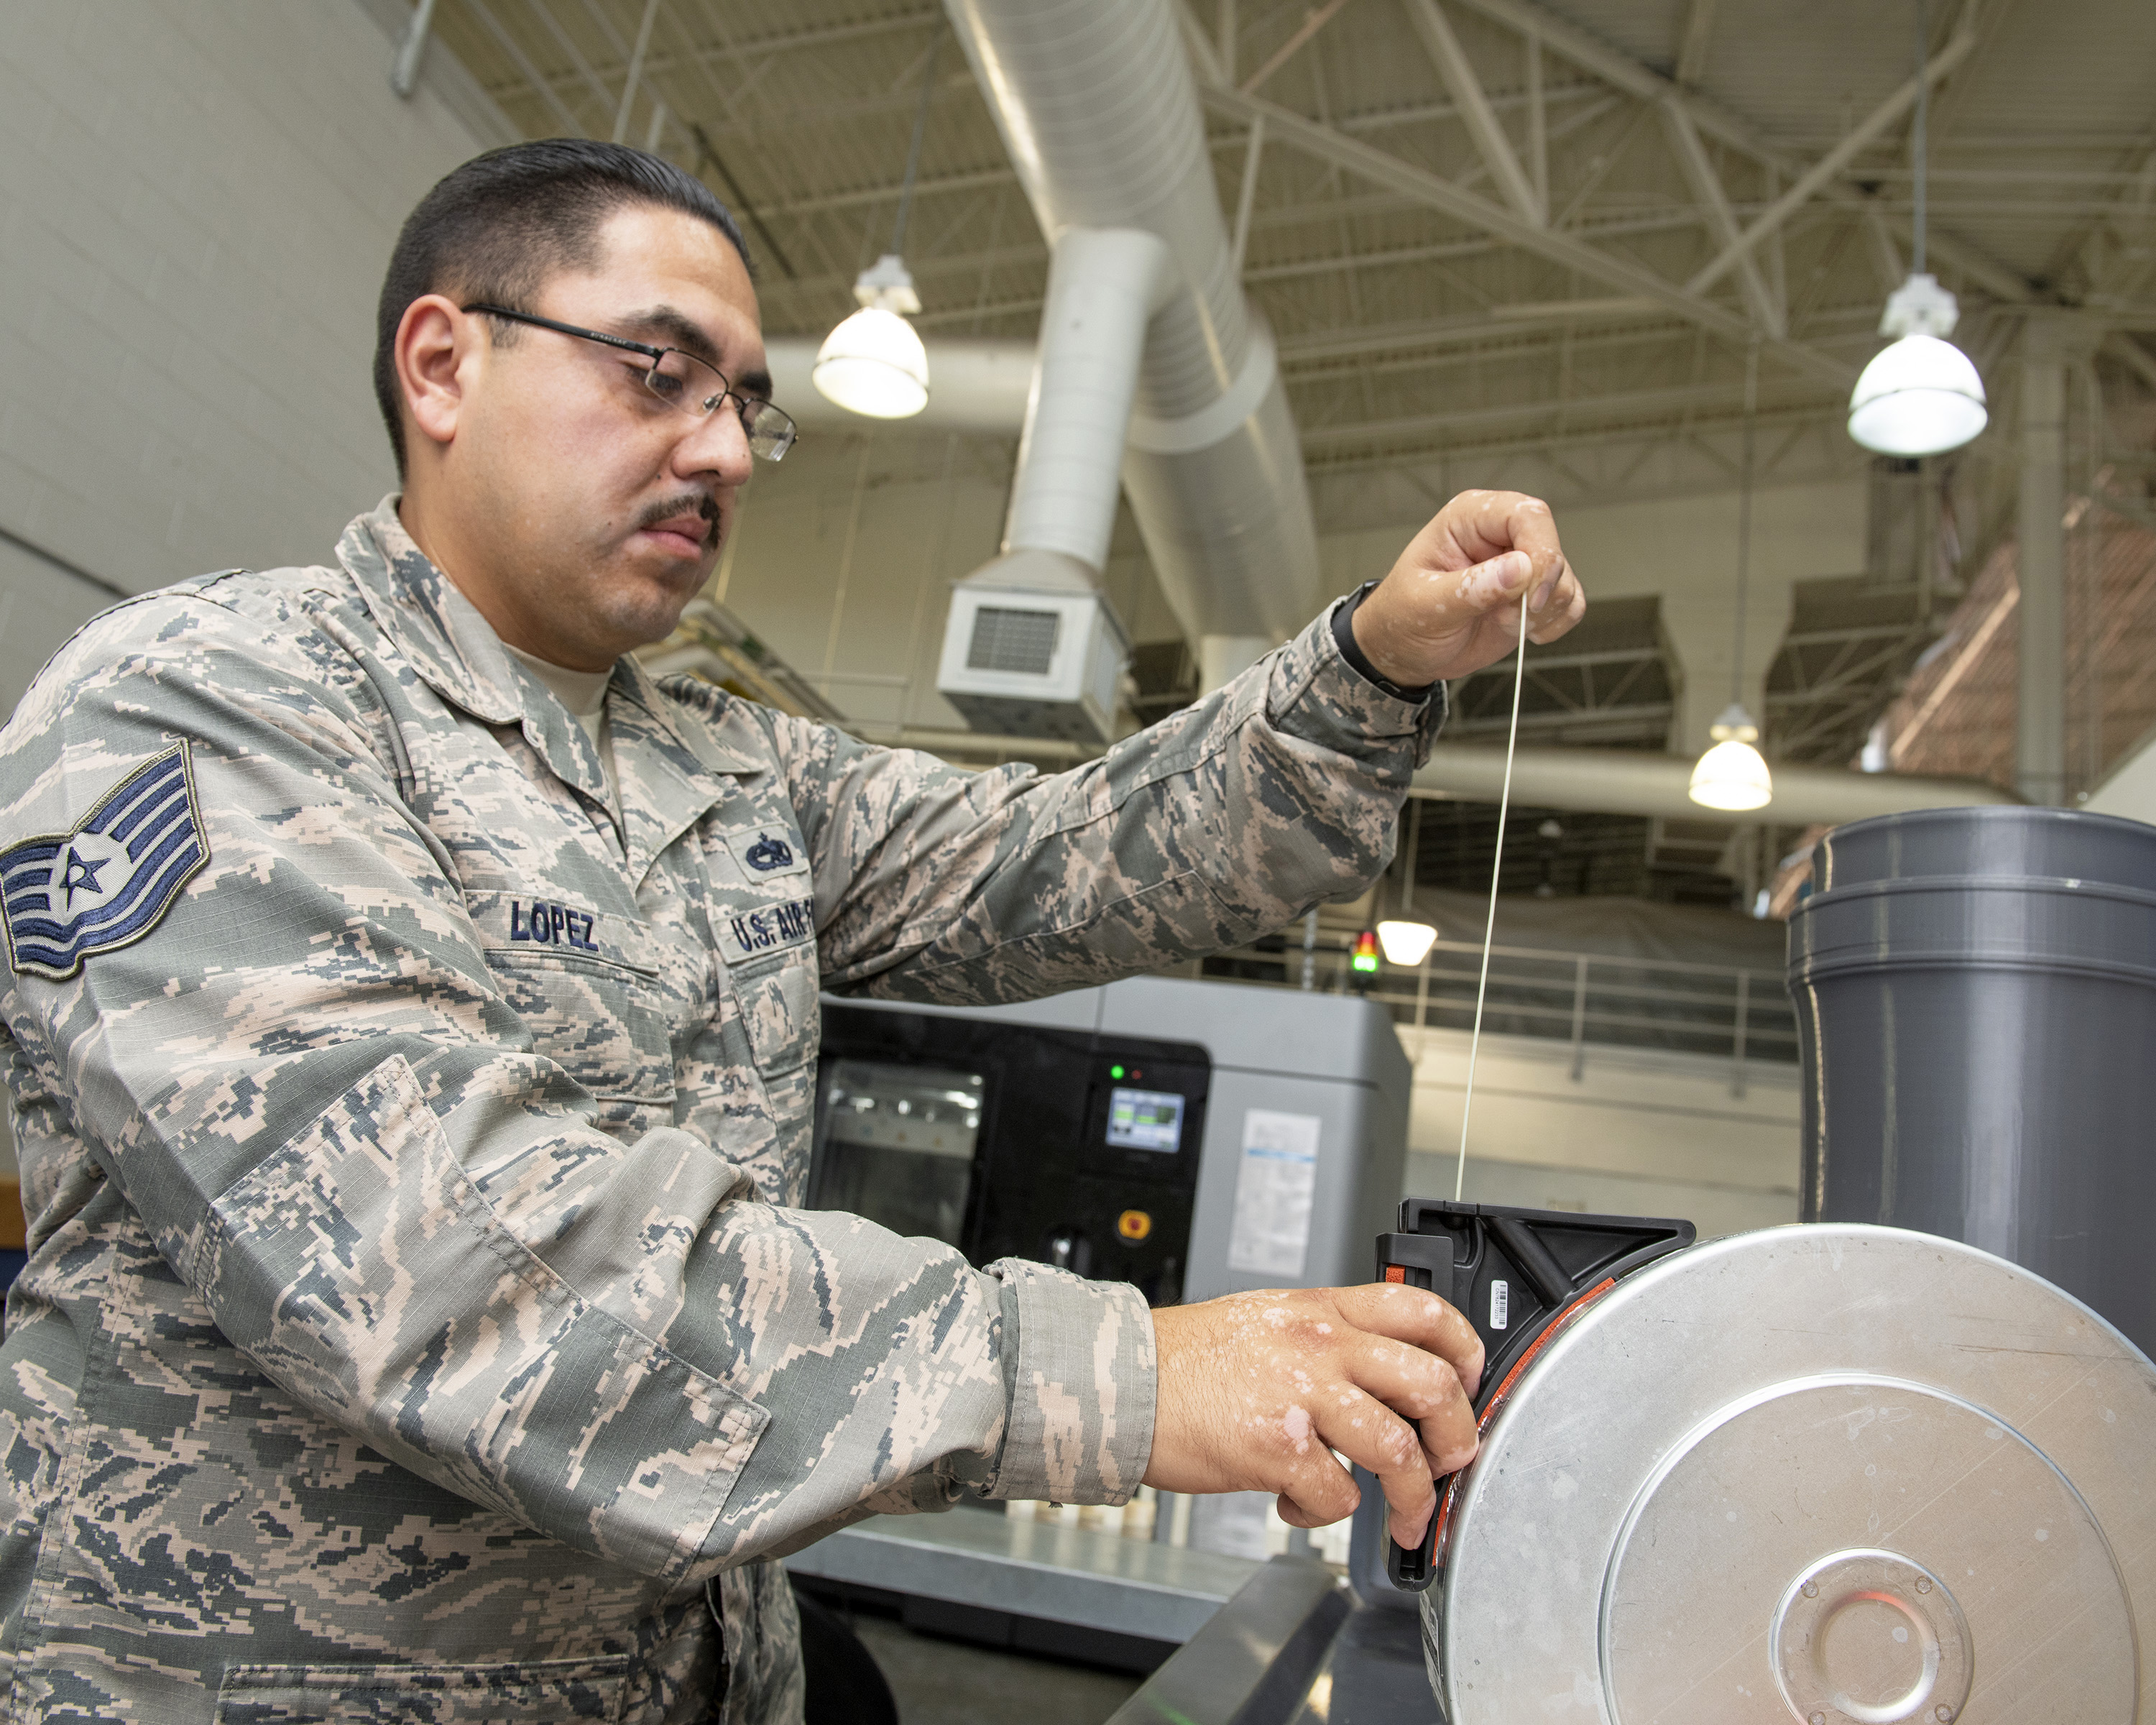 Travis Air Force Base, California, is the first installation to have the Stratays F900 3D industrial printer certified by the Federal Aviation Administration and Air Force Advanced Technology and Training Center for use on aircraft replacement parts. (Louis Briscese/Air Force)